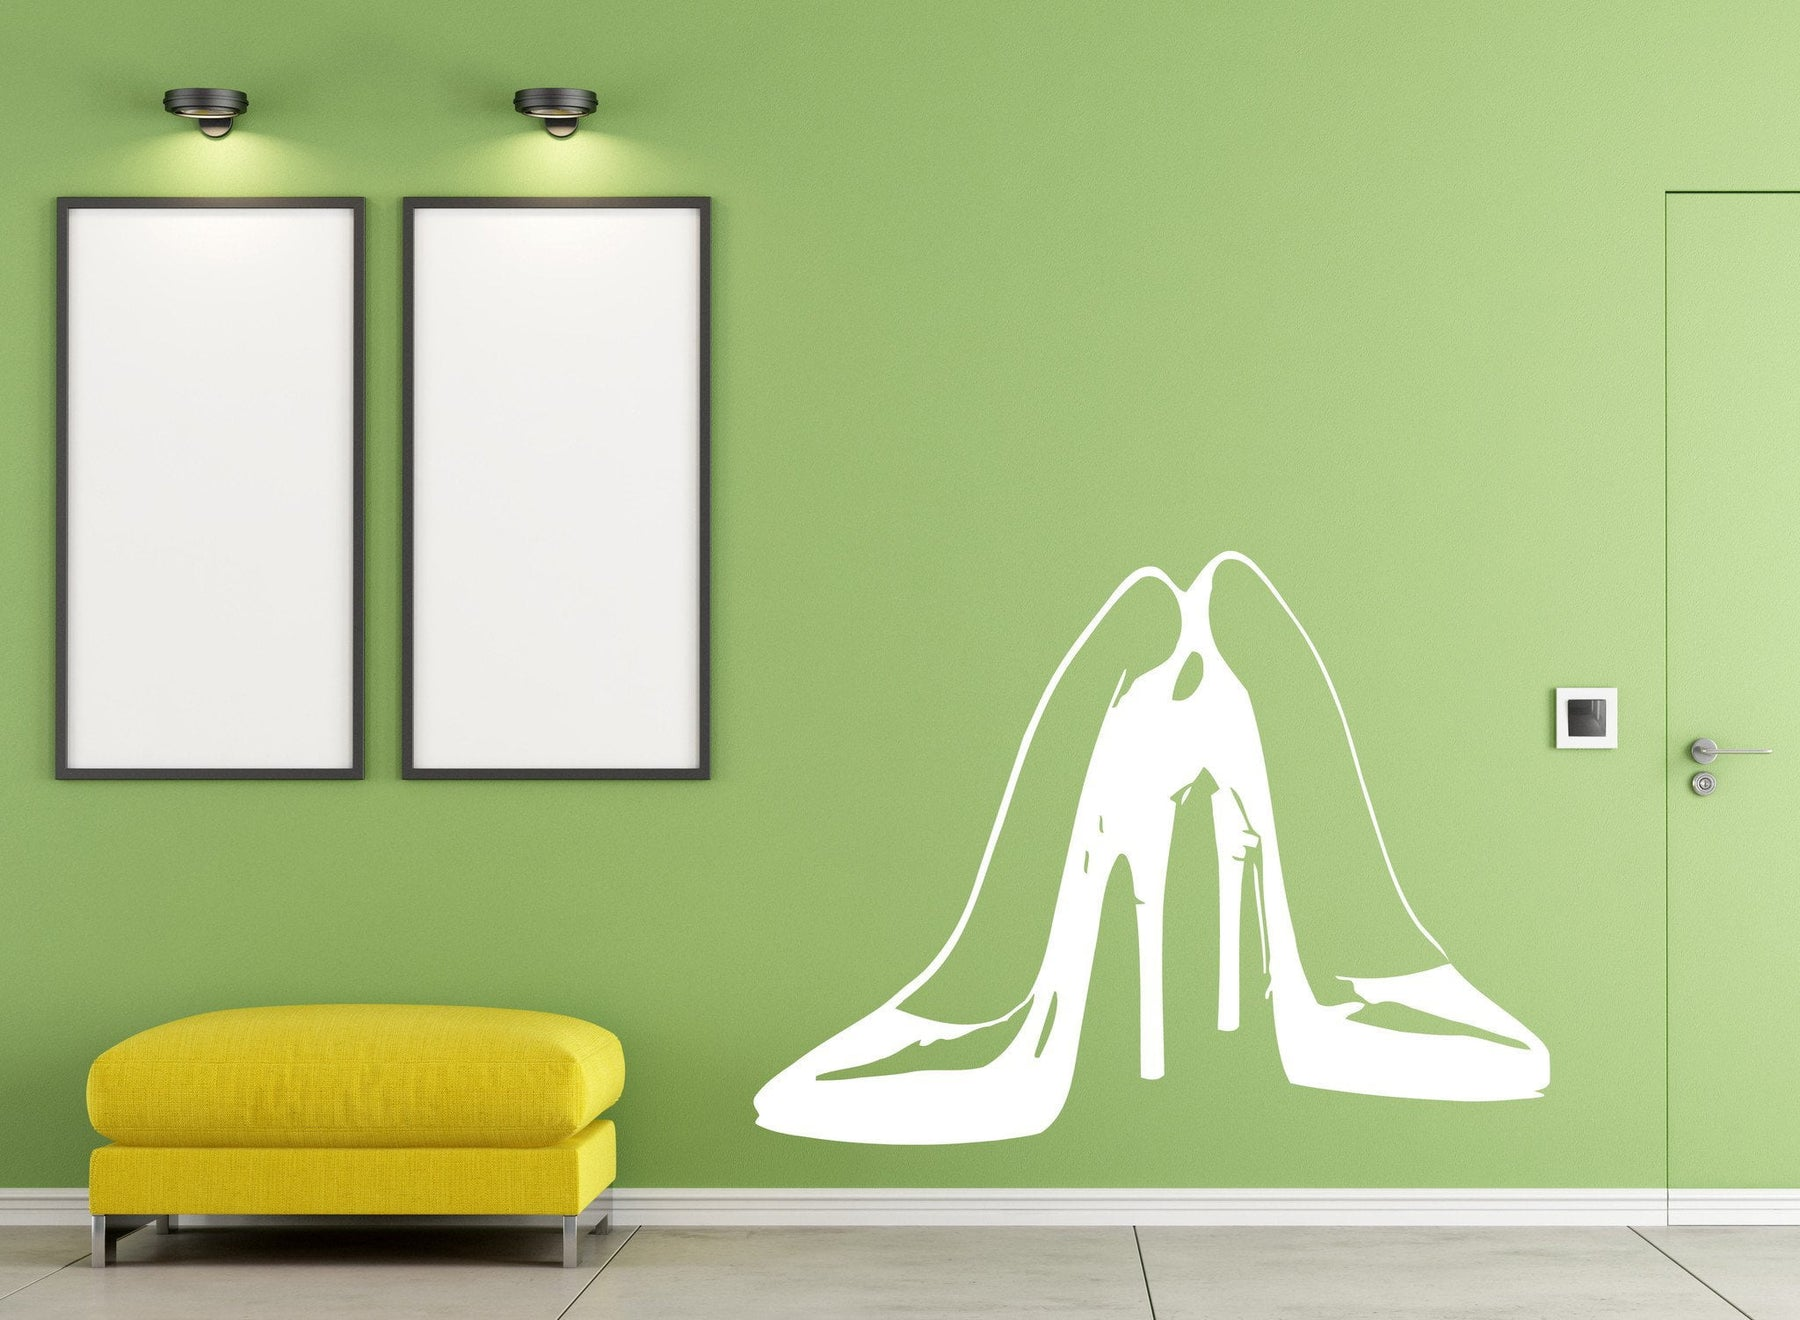 Vinyl Decal Wall Sticker Pair female high heel stylish shoes Unique Gift (m564)